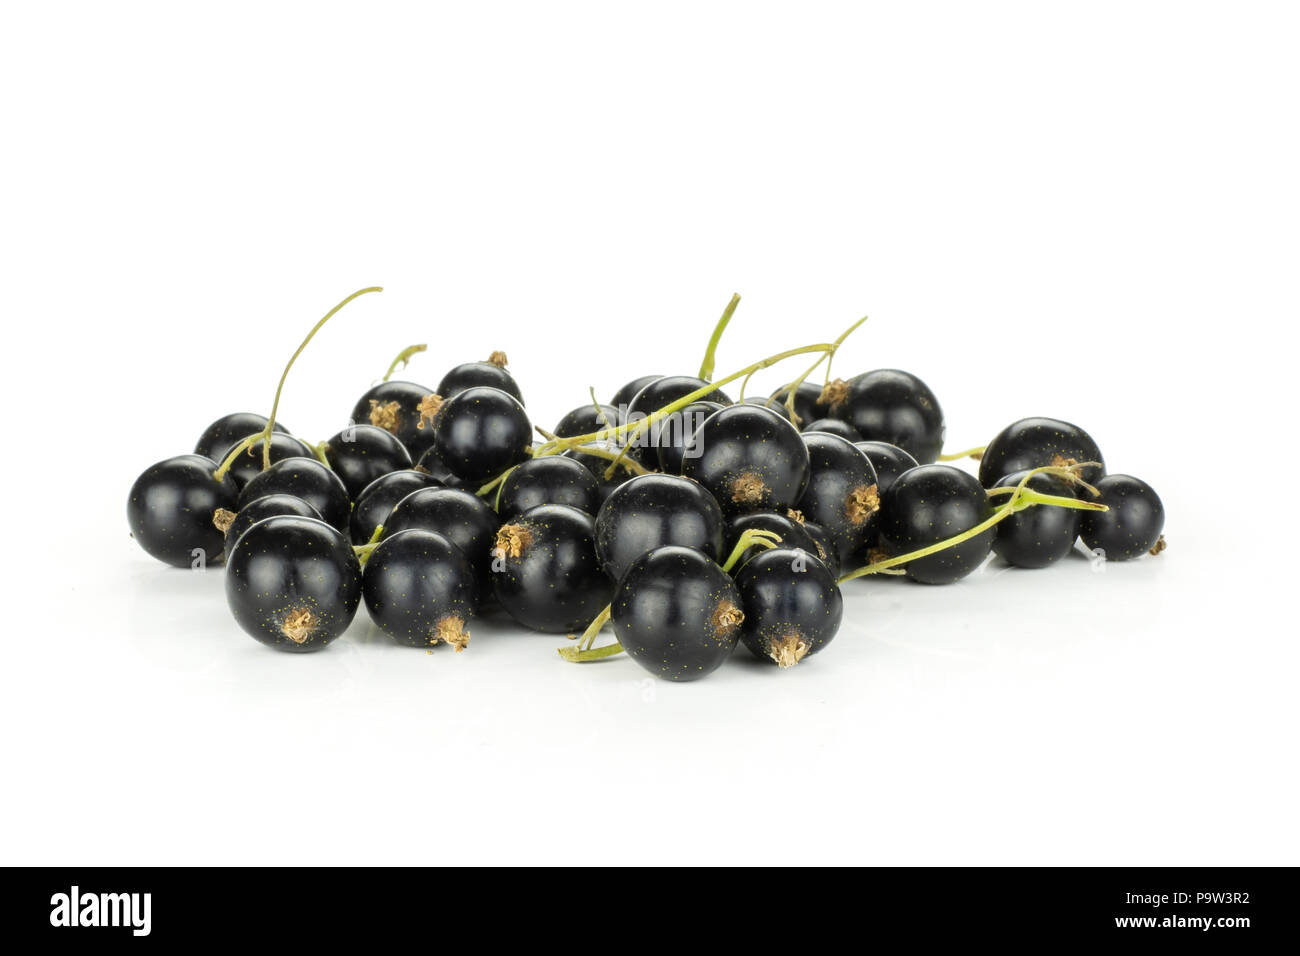 Lot of whole fresh black currant berry ben gairn variety set isolated on white - Stock Image